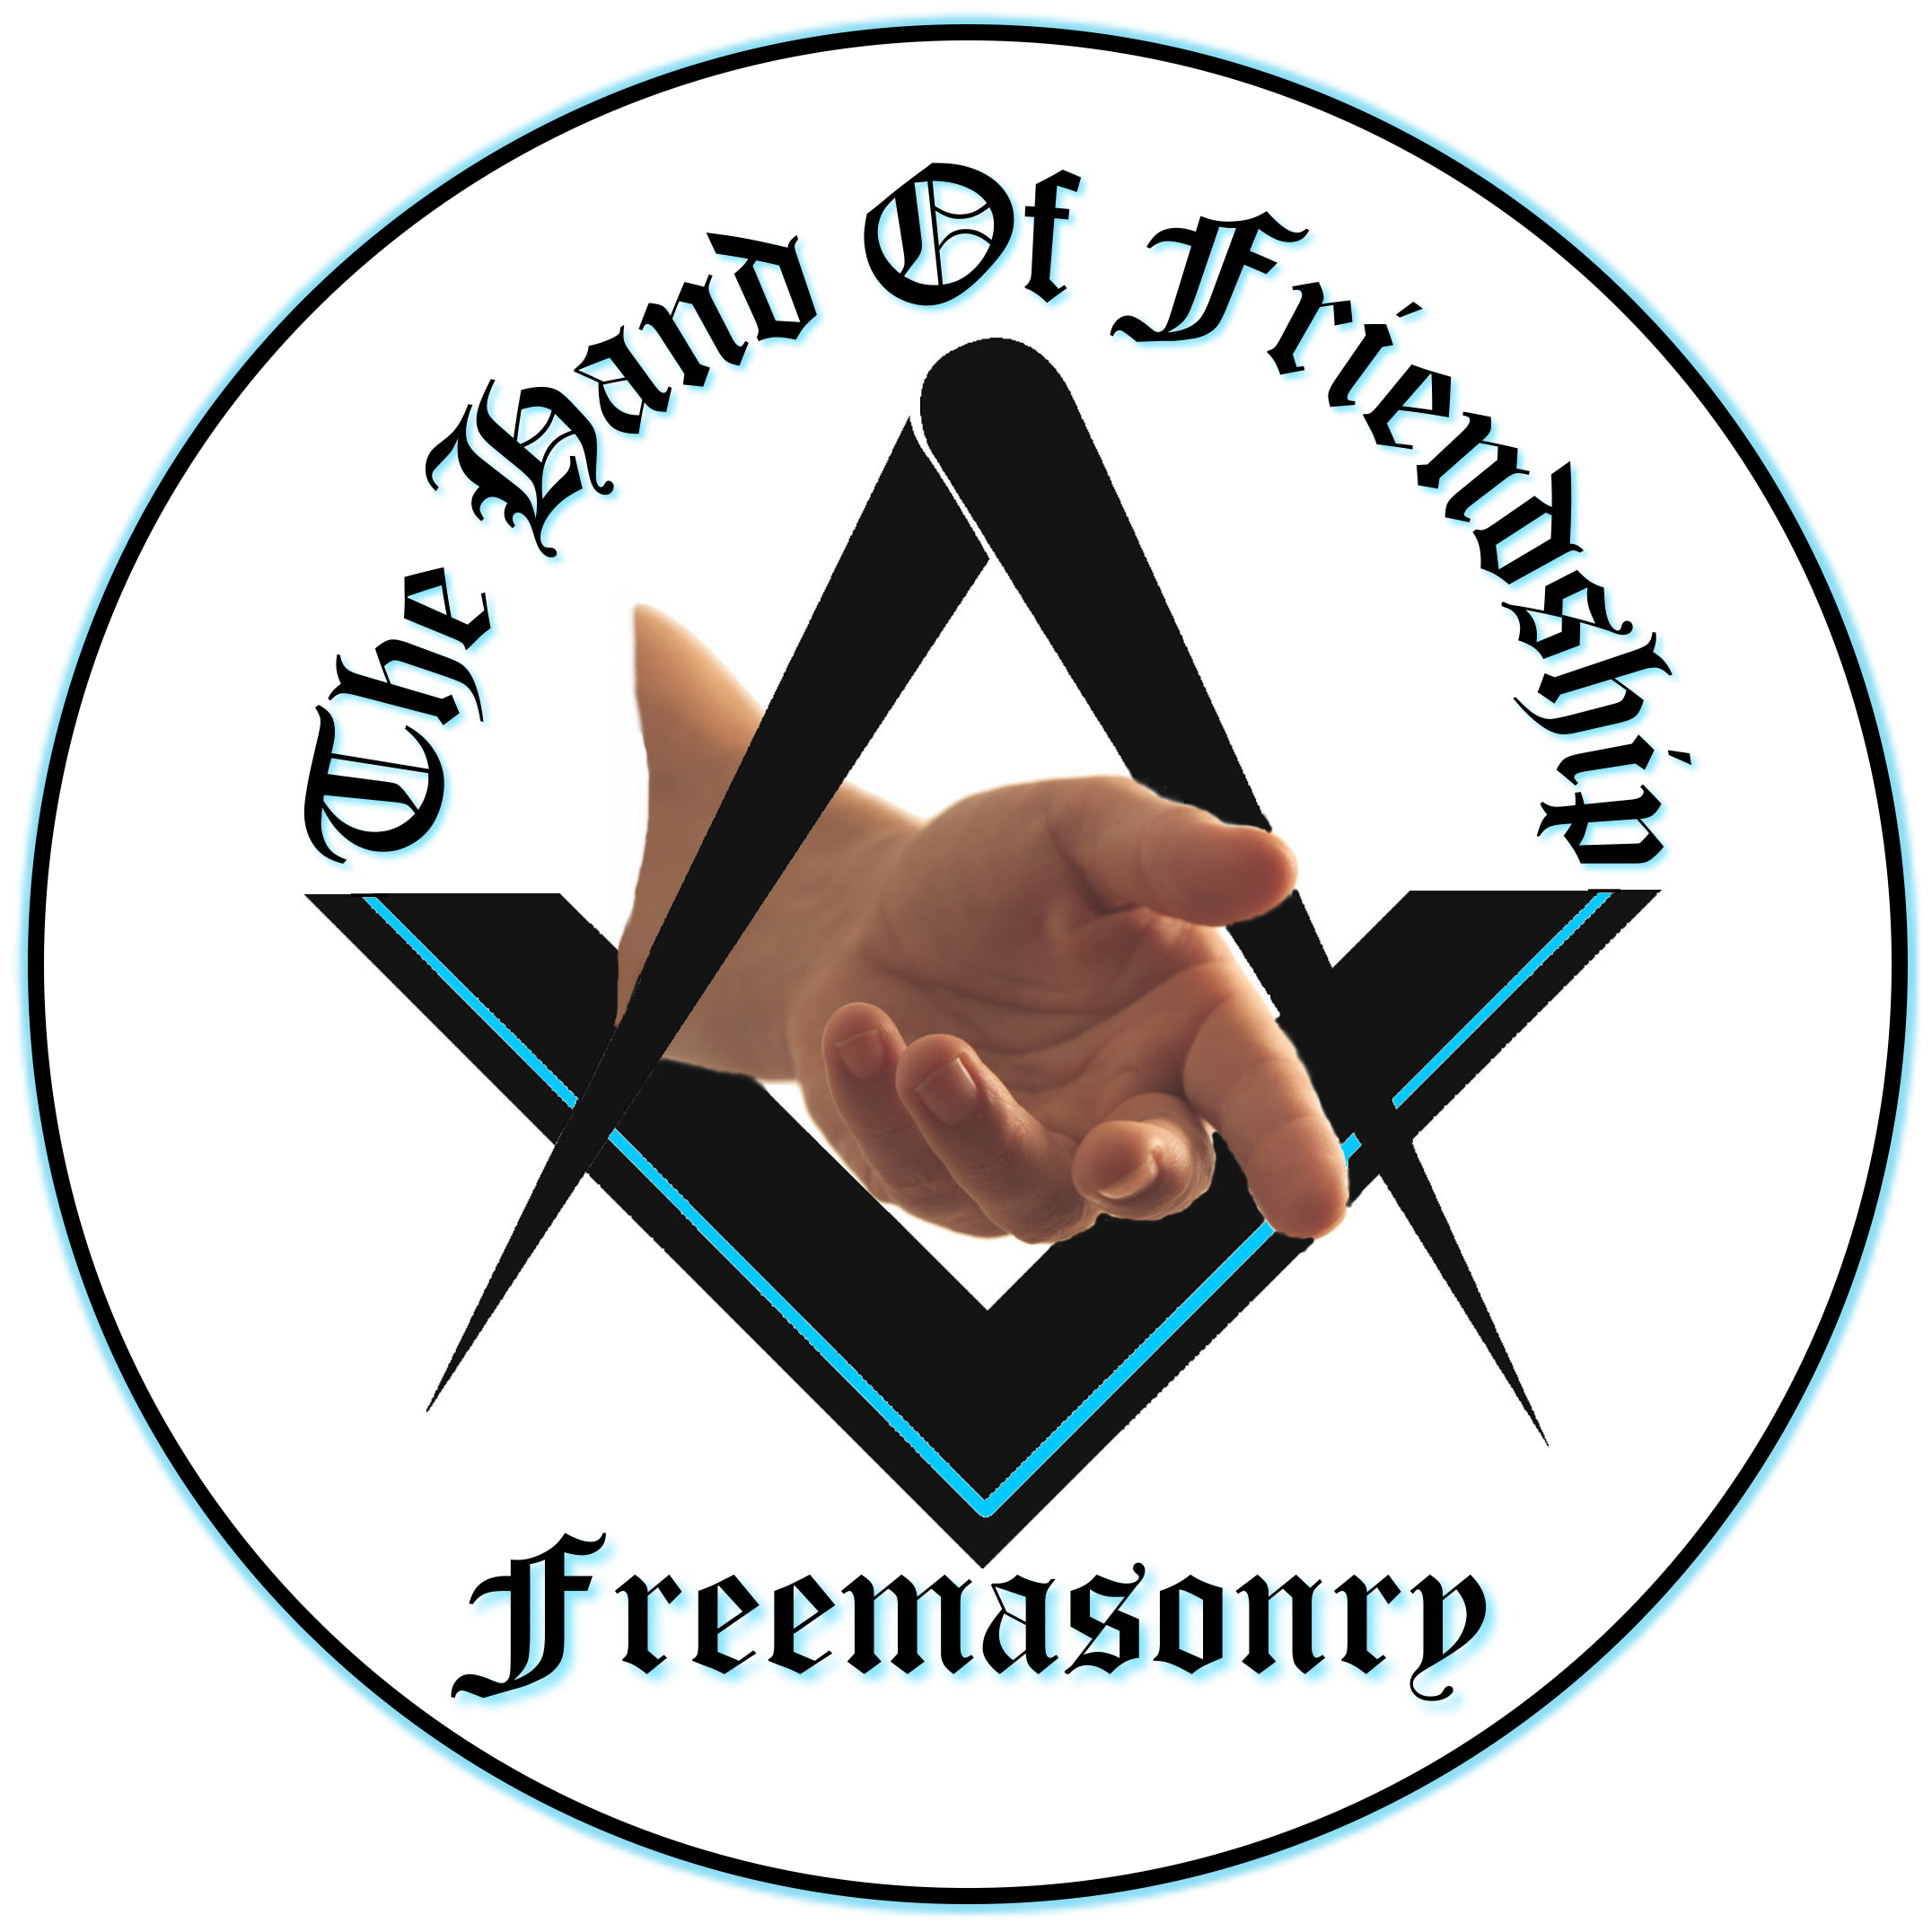 Freemason vector svg. Freemasonry the hand of